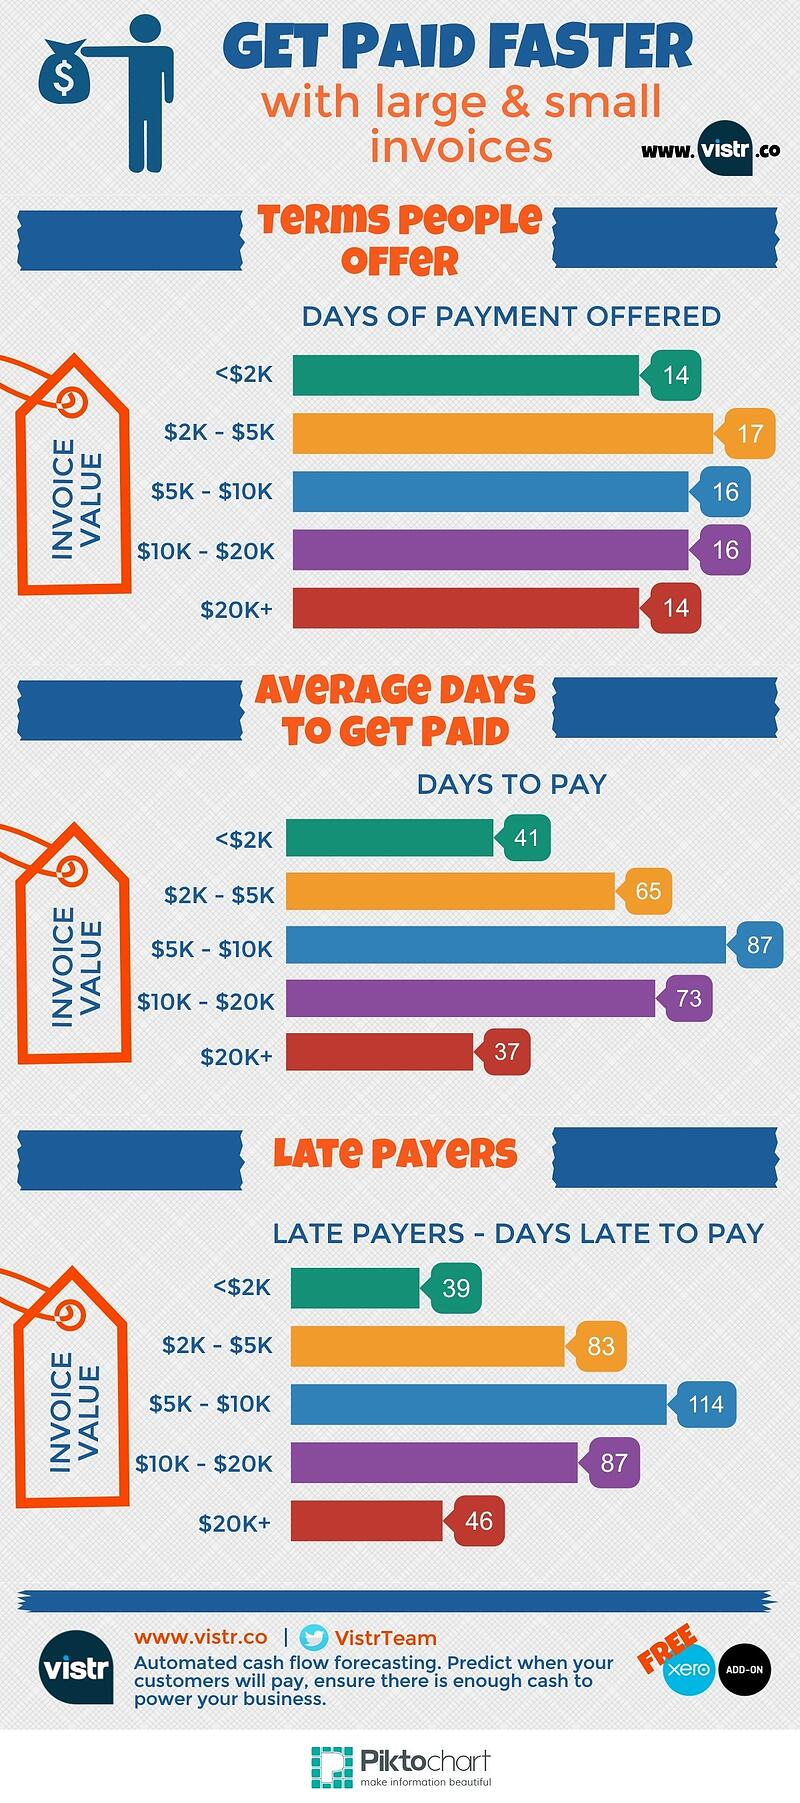 Bundling or splitting invoices to get paid faster